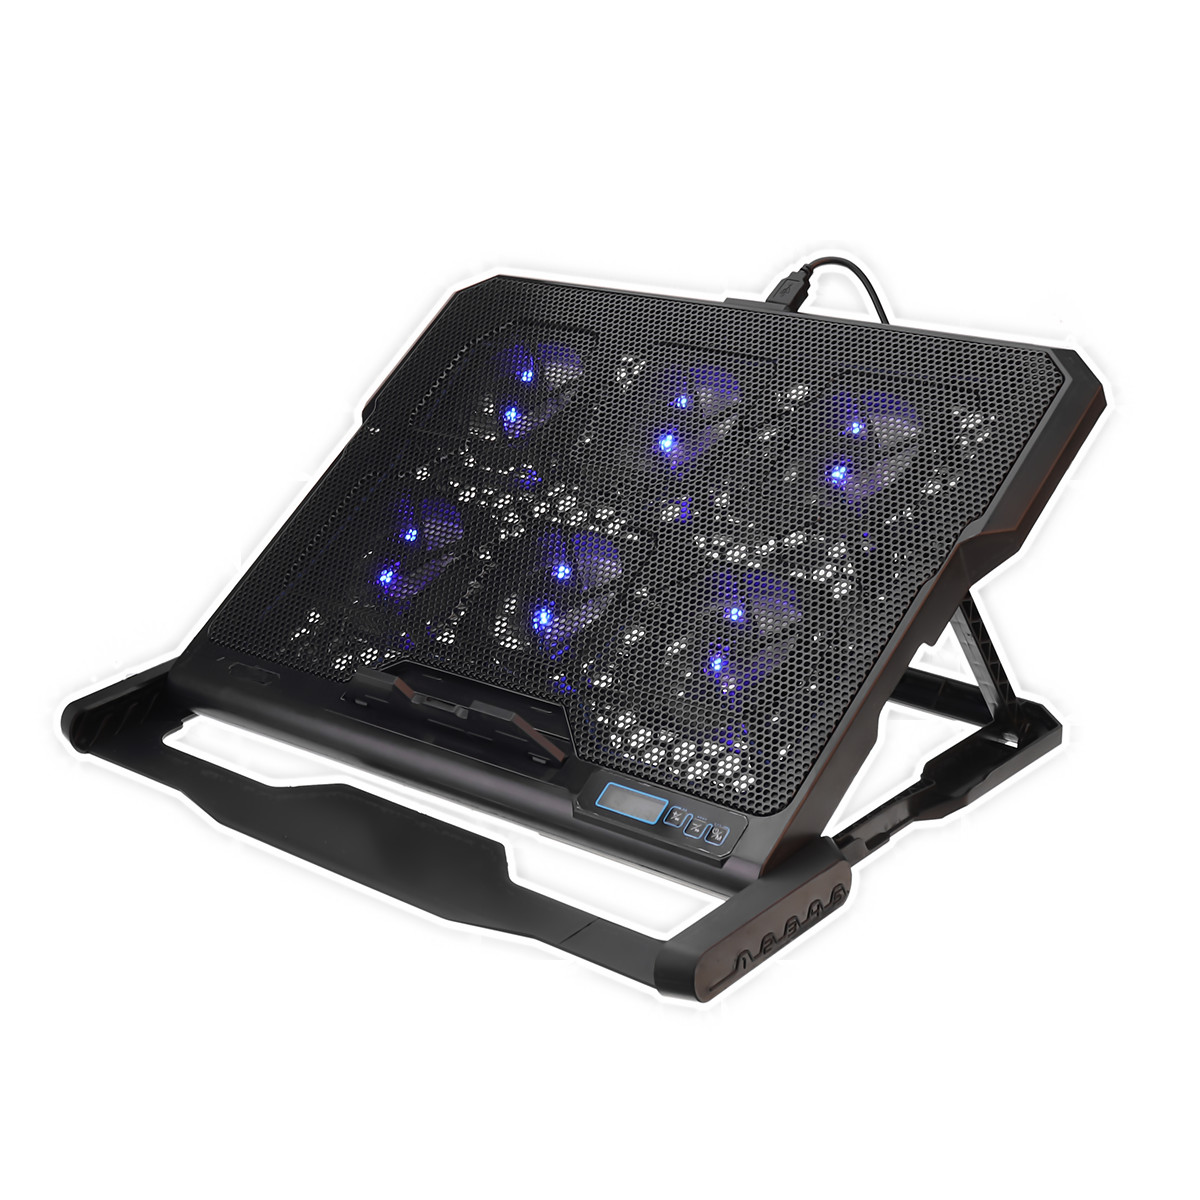 6 Fans LED 2 USB Port Laptop Cooling Pad Laptop Cooler Notebook Stand Notebook Cooling Pad Mat For 12-15.6 Inch Laptop cooling pad for laptop aluminum cooling laptop stand fan cooler 2 uab port base support 5 fans led for 12 15 15 6 17 inch